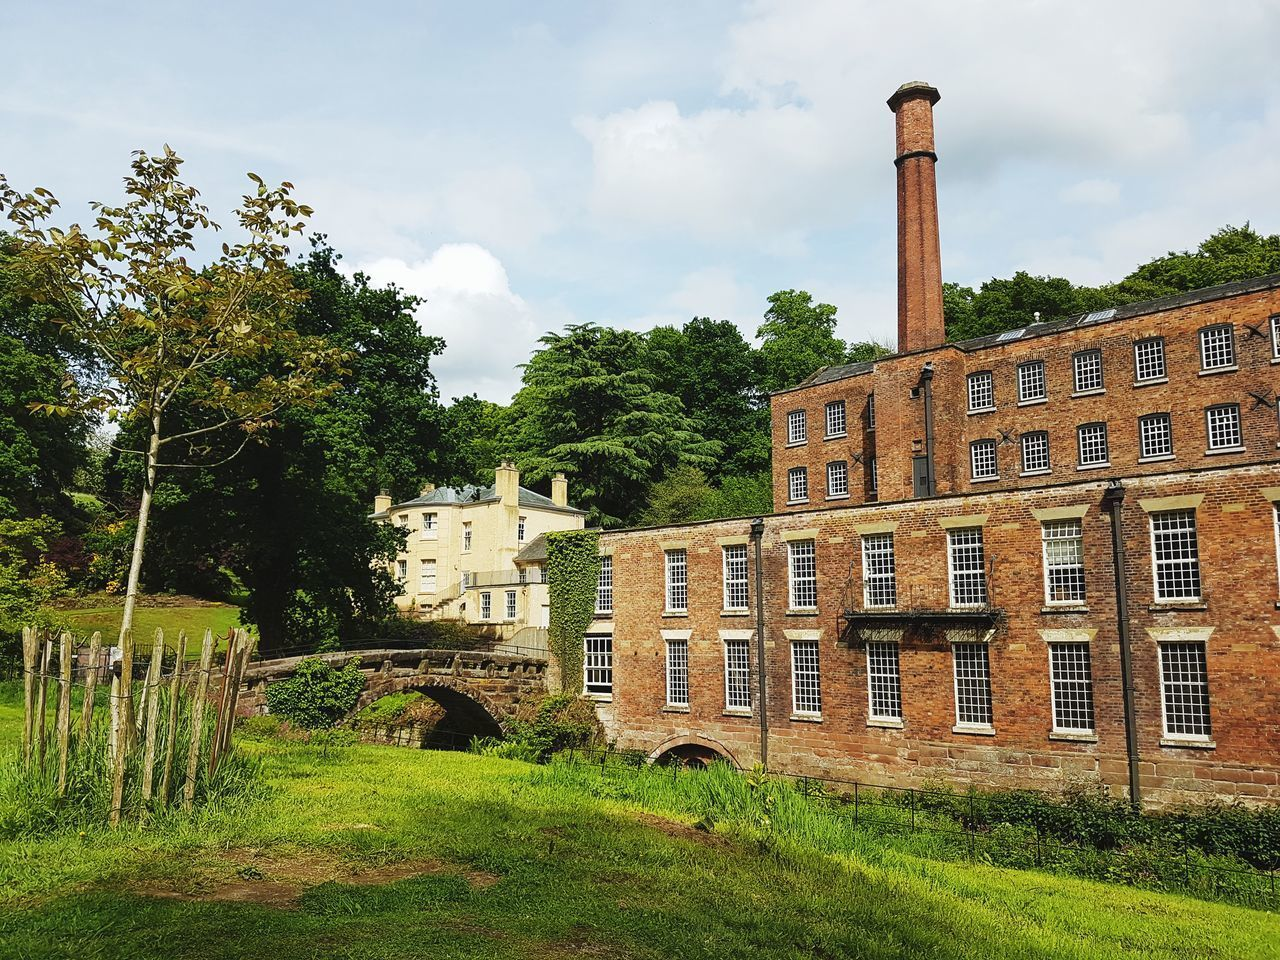 Architecture Built Structure Building Exterior Cloud - Sky Outdoors No People Grass Quarry Bank Mill History And Culture History And Industry Cotton Mill Springtime A Walk In The Garden... Without Hiding Anything... Without Filter... Lifestyles